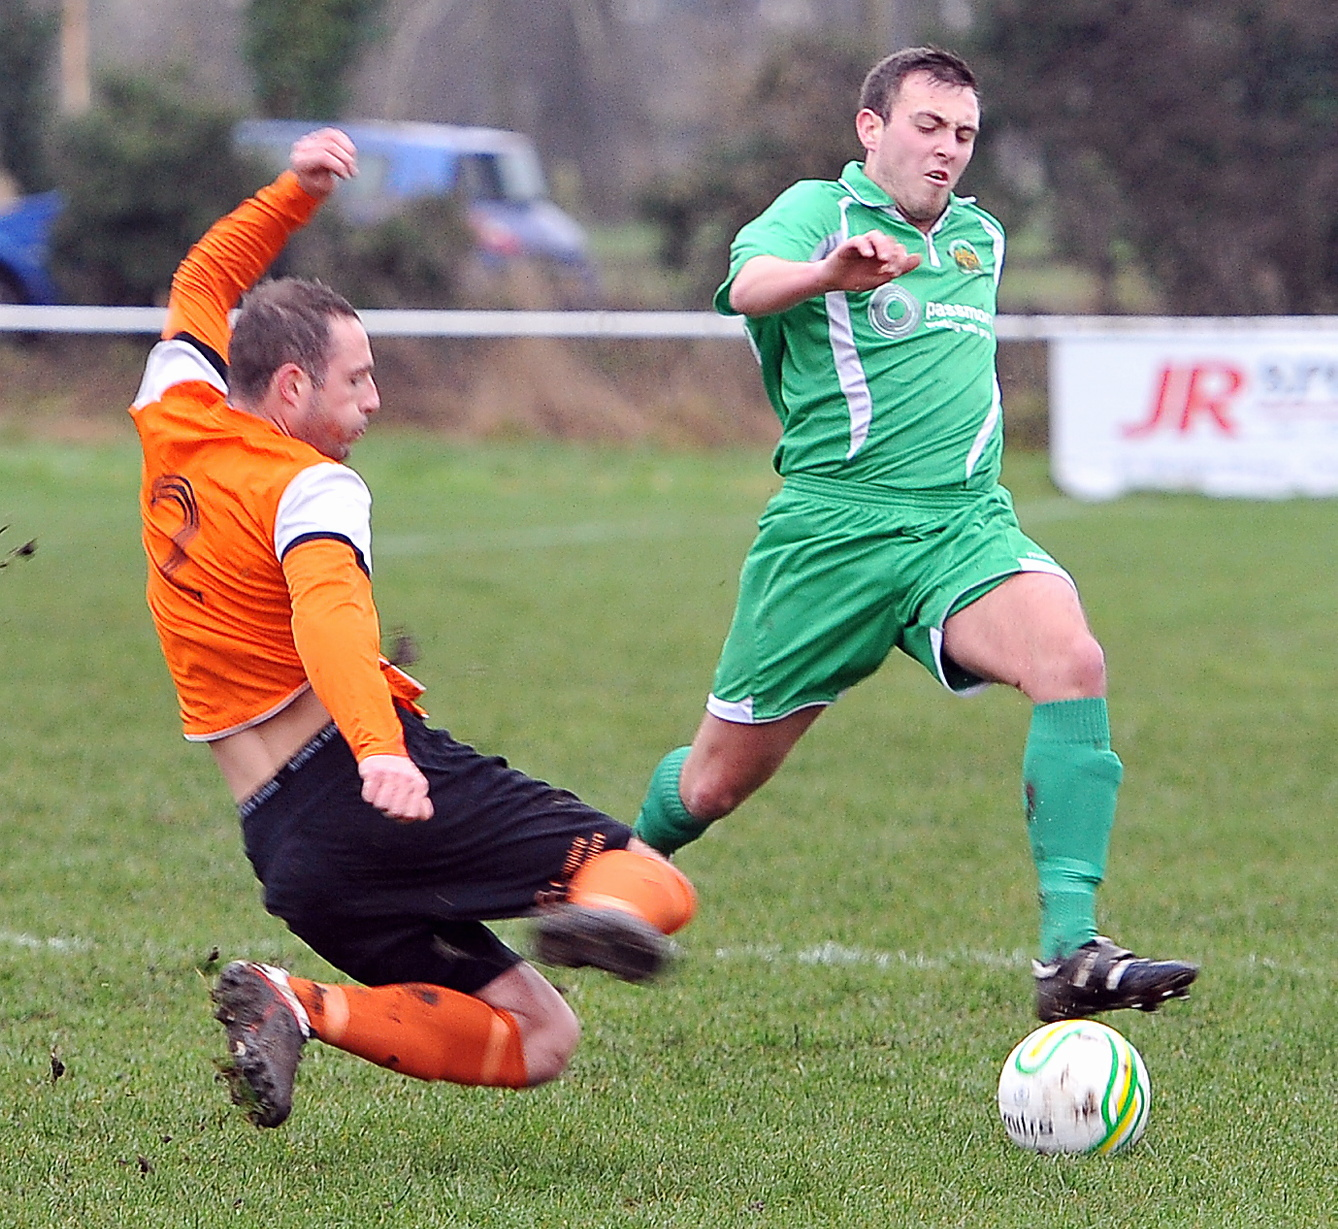 Defender Joe Currie had a fine game